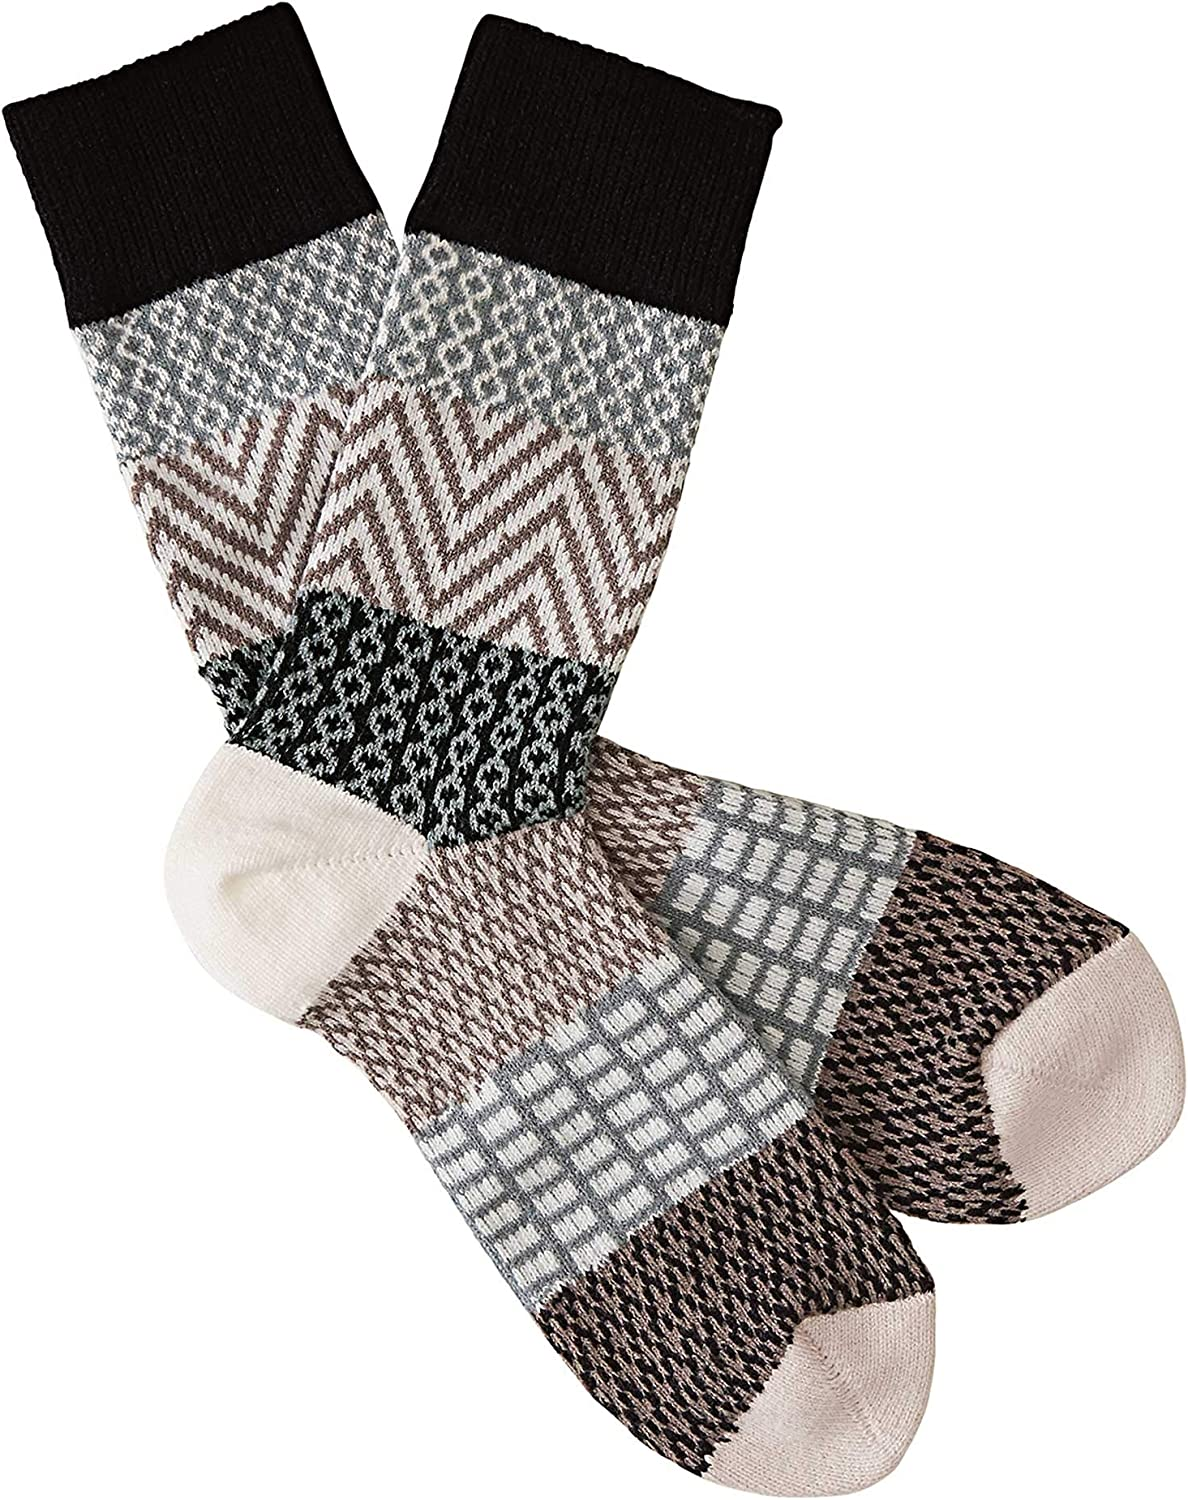 World/'s Softest Socks Madeline Weekend Collection NEW Crew Length